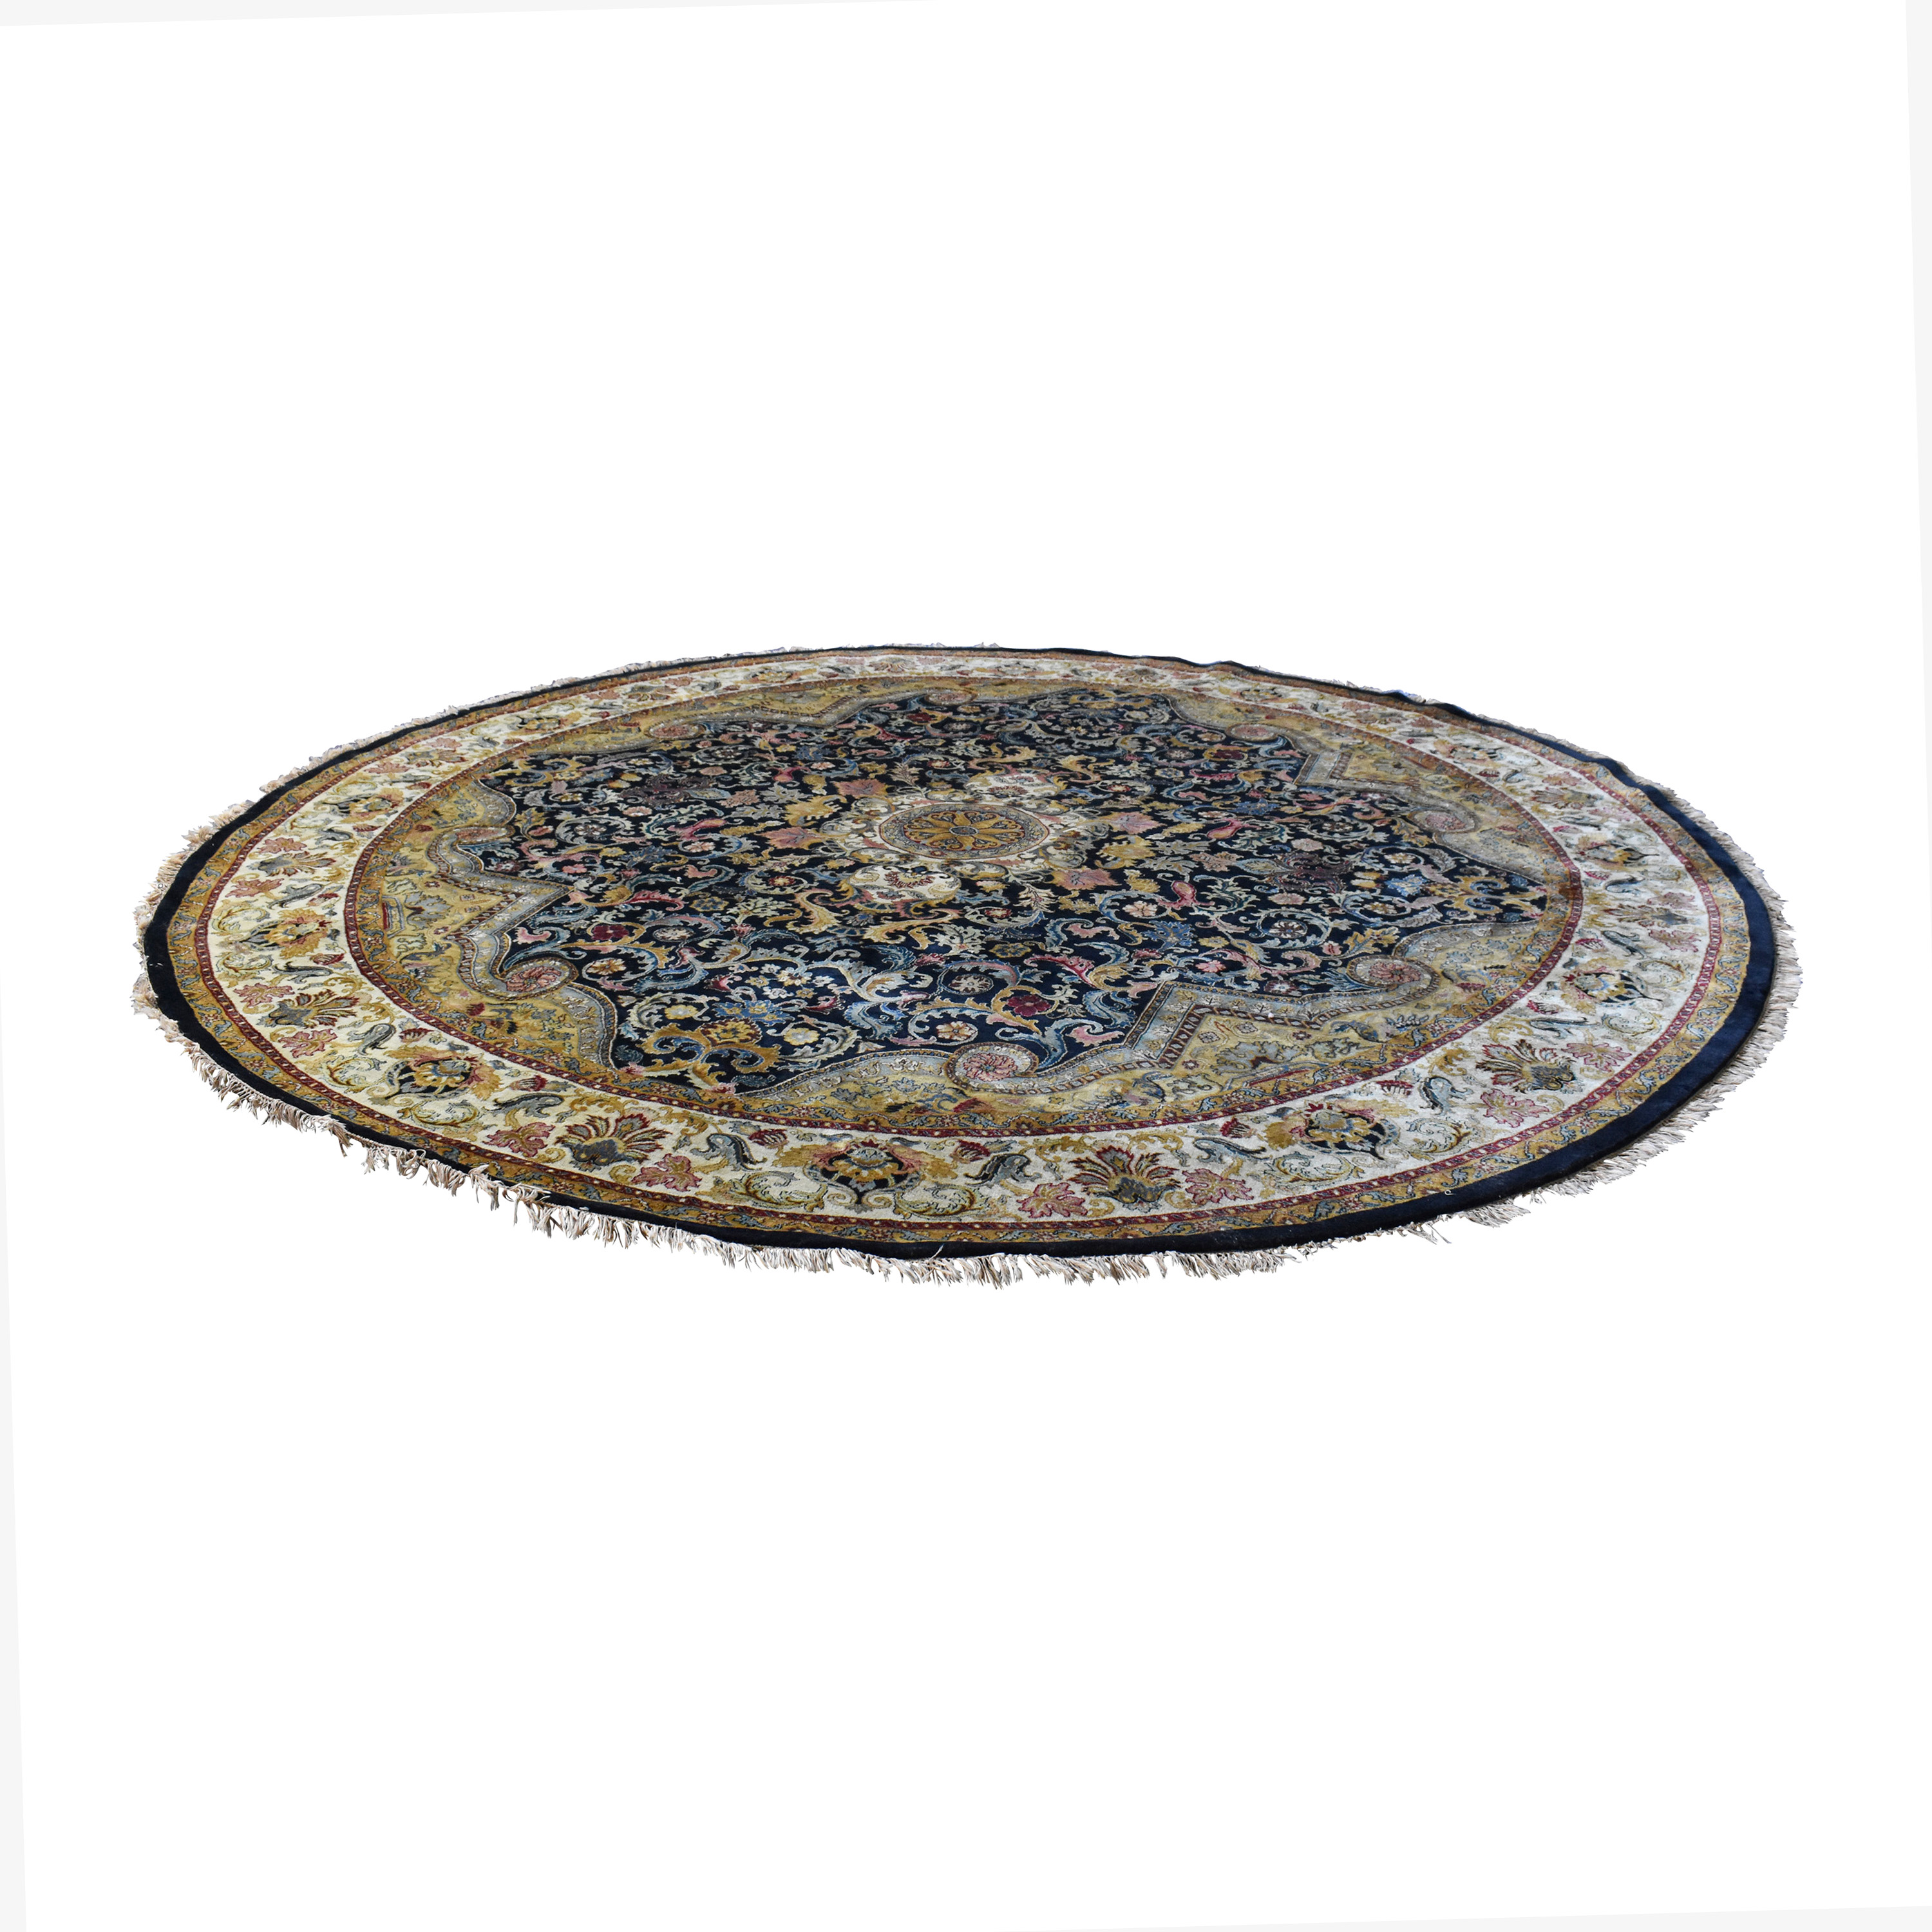 Round Wool Rug for sale